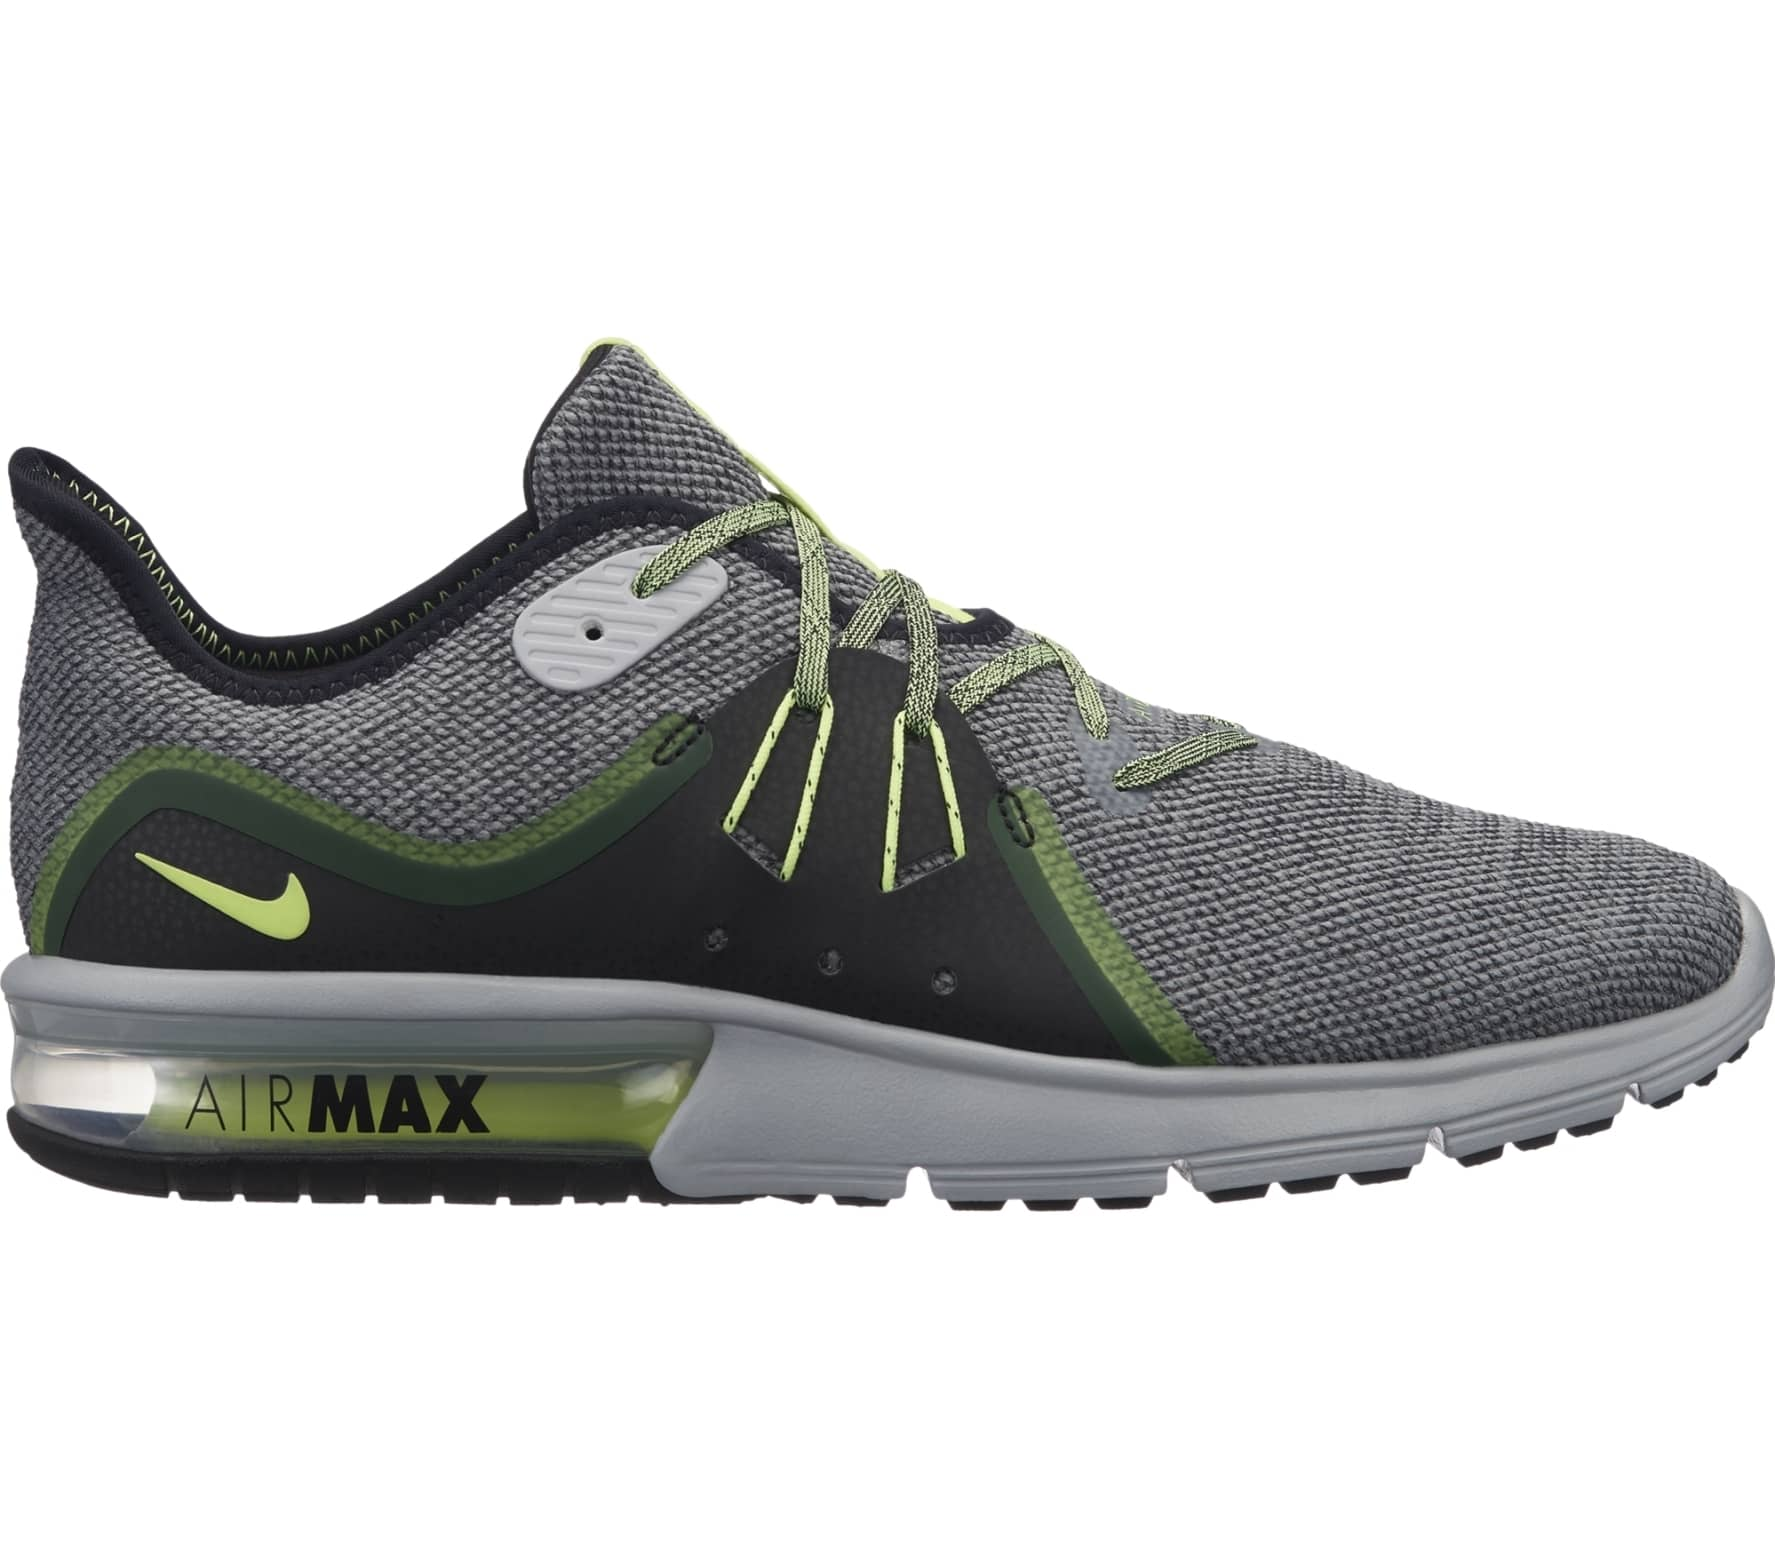 lowest price dfac7 642fa Nike - Air Max Sequent 3 men s running shoes (grey green)